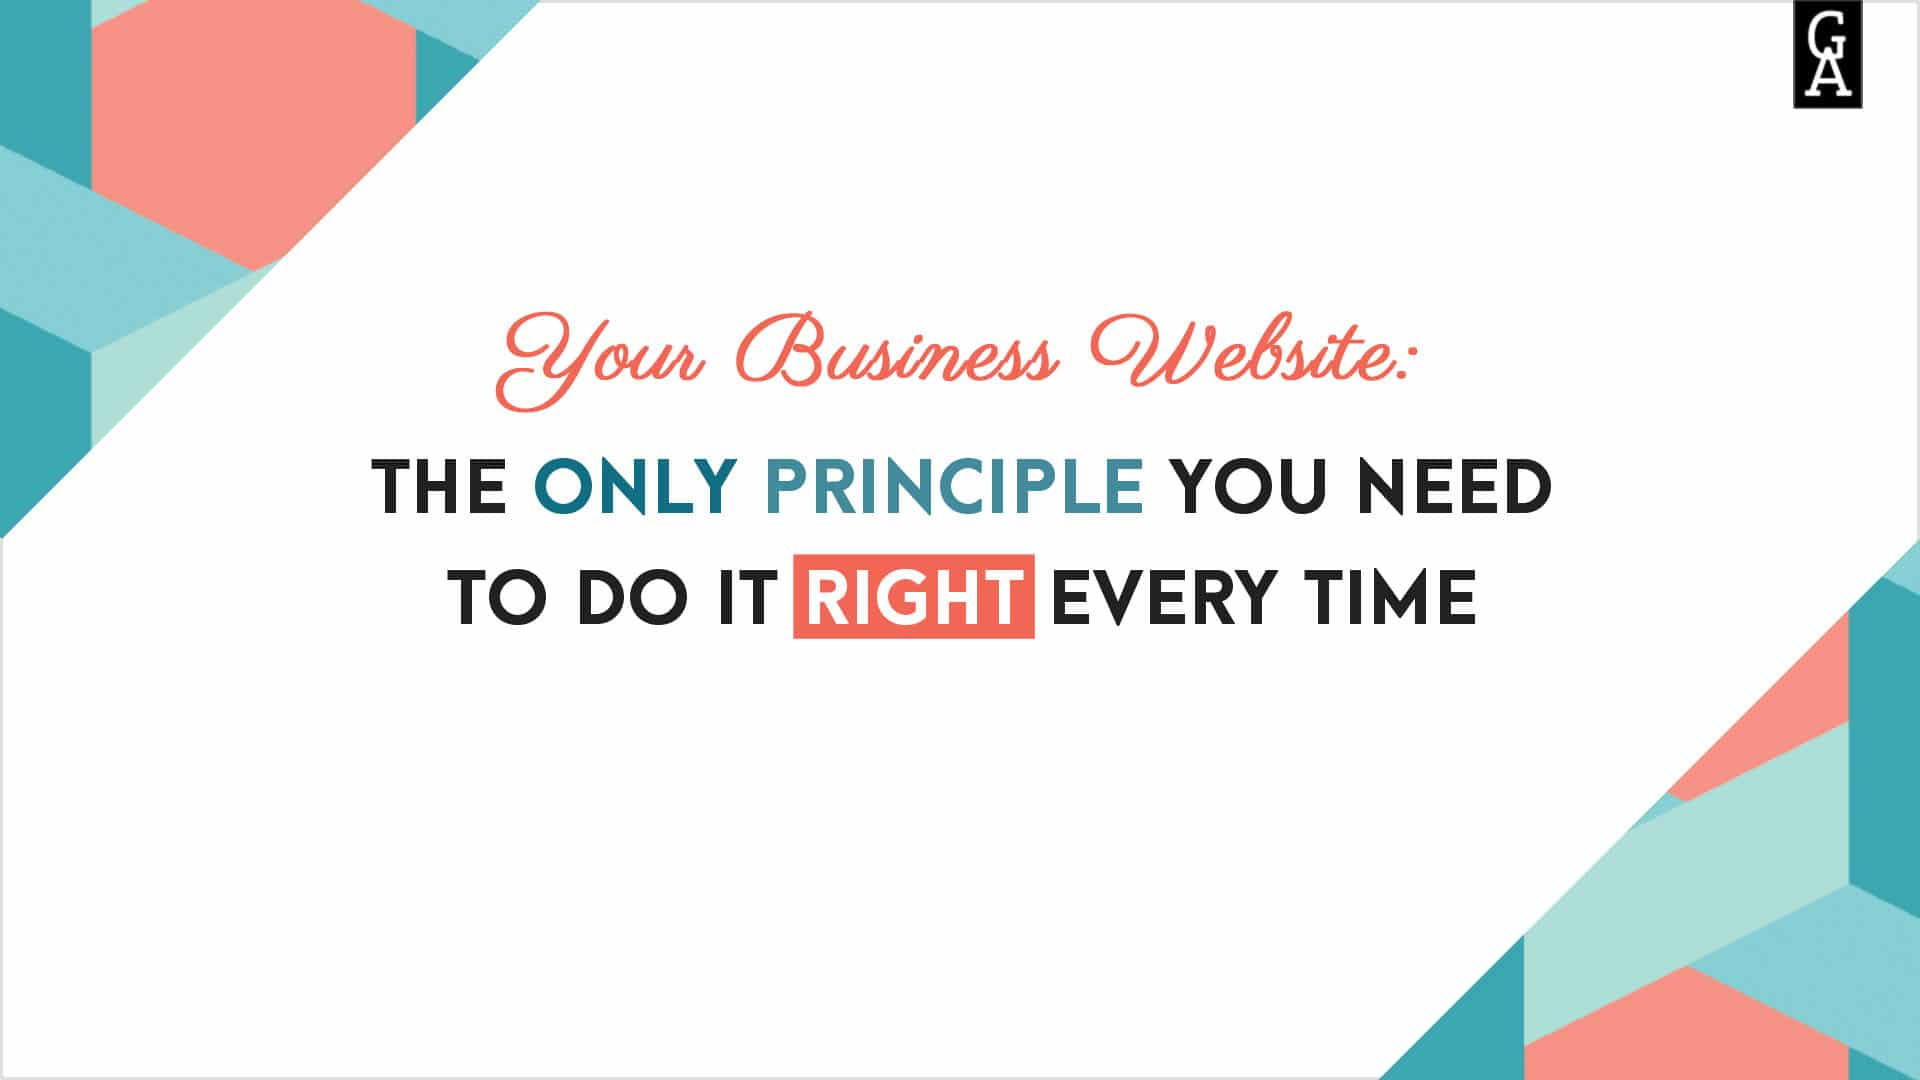 Your Business Website: The Only Principle You Need to Do It Right Every Time.